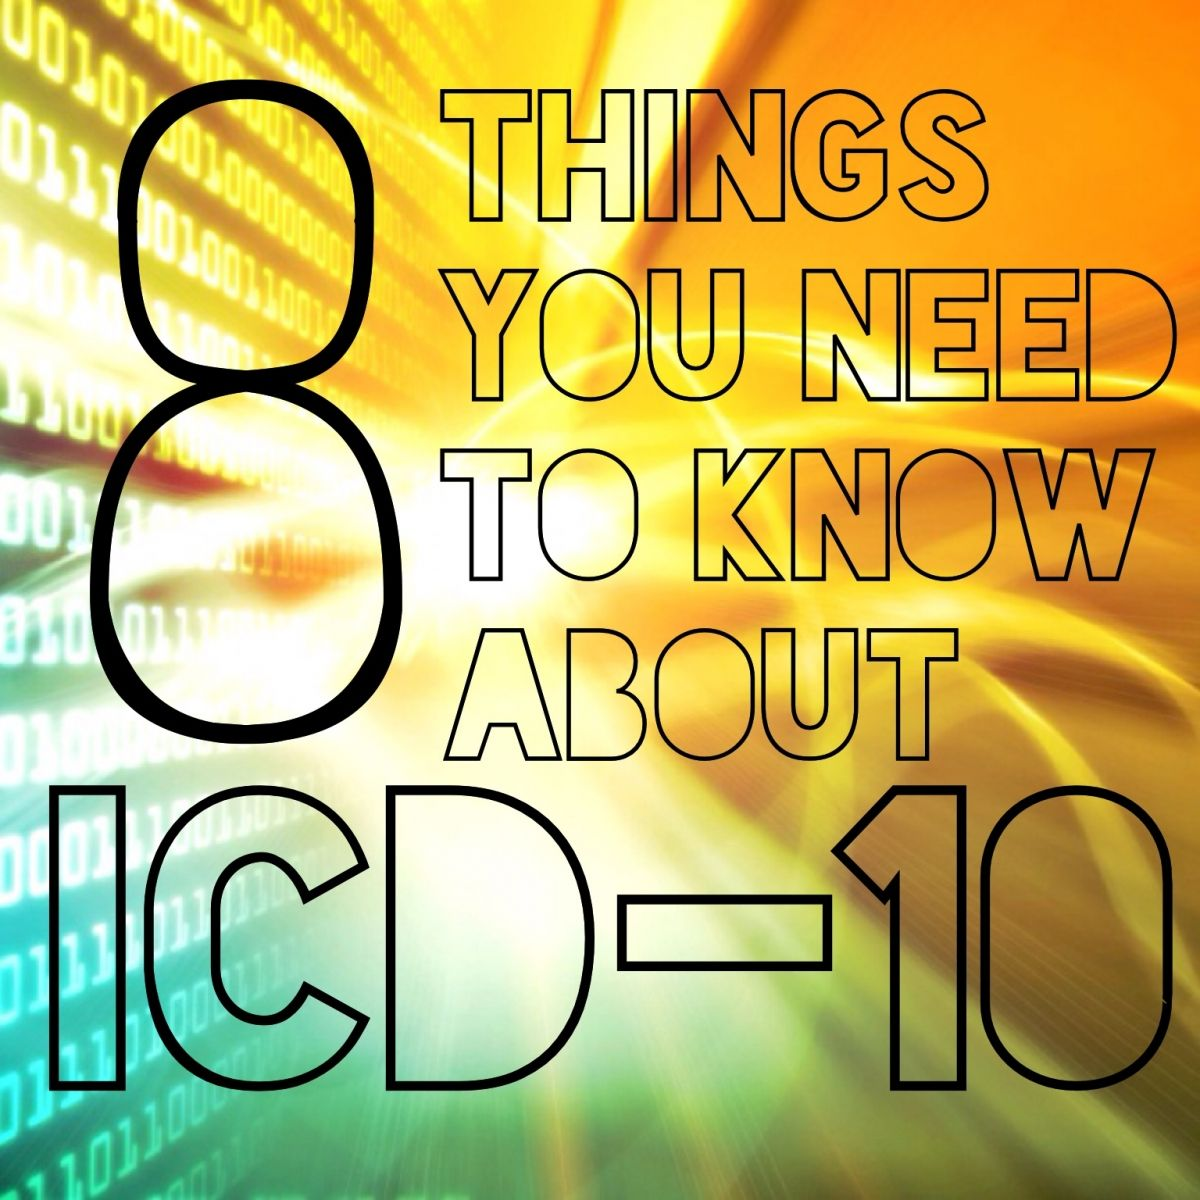 7923a19eb3e3 8 Things You Need to Know Now About ICD-10 | WebPT #ICD10 #compliance